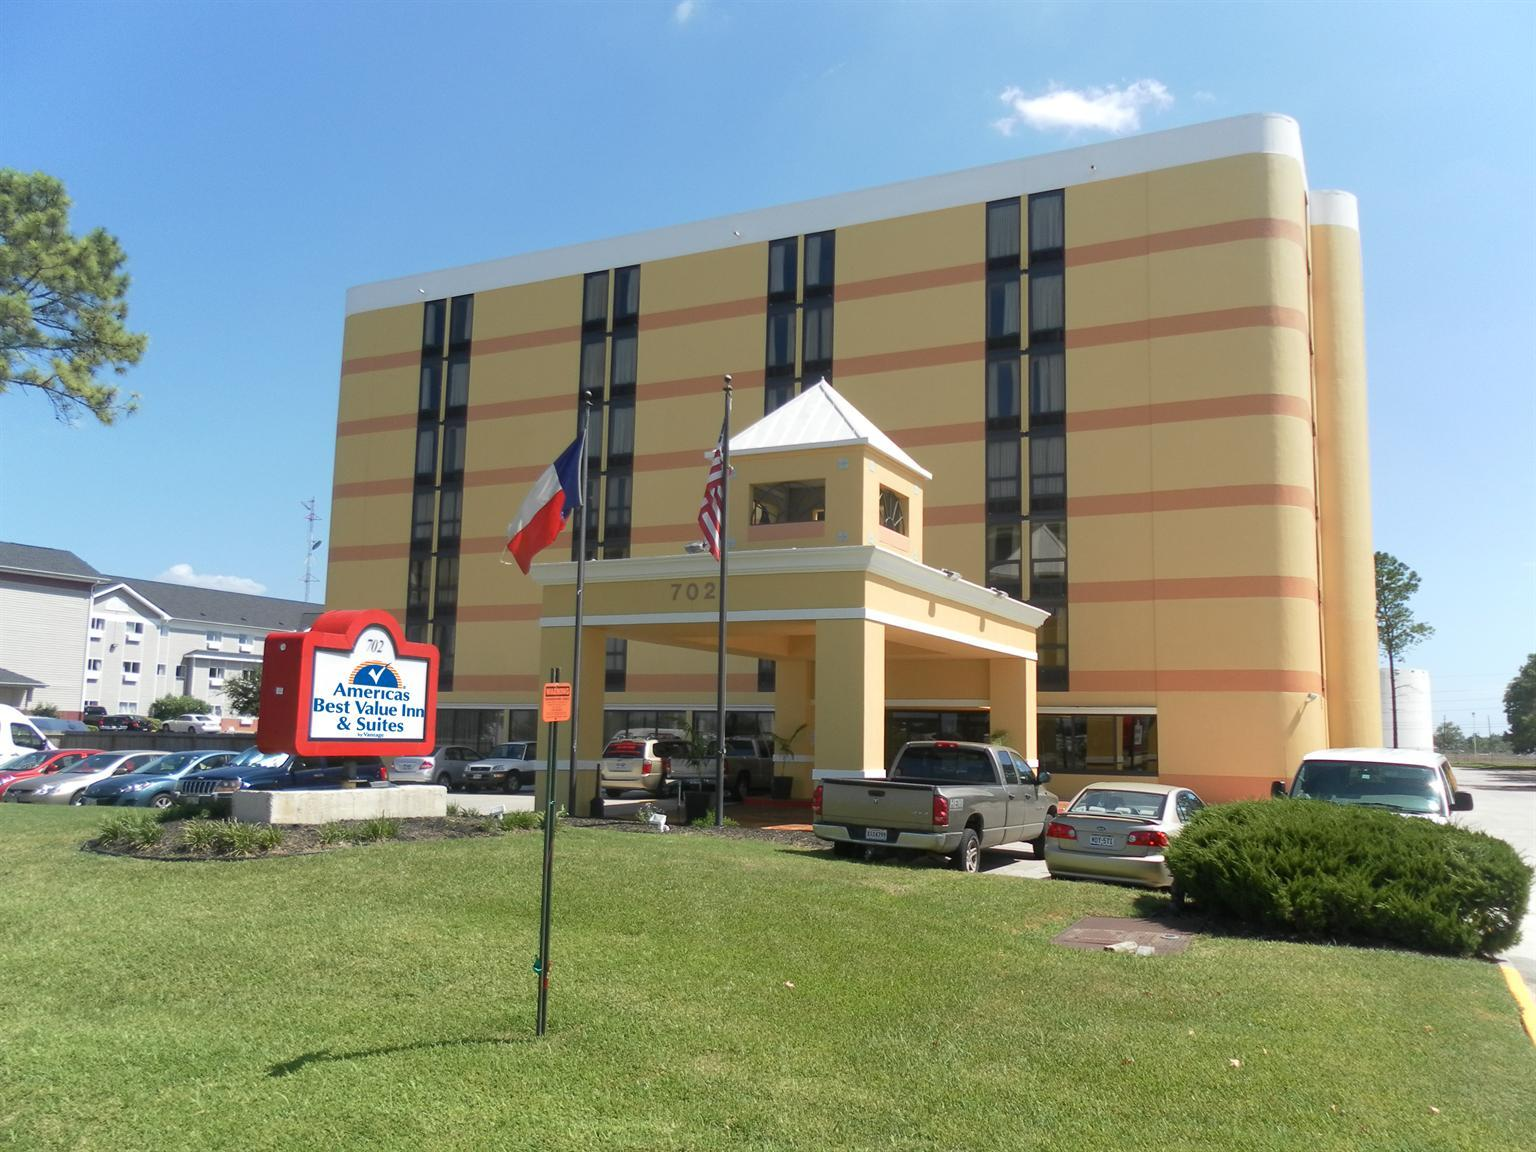 Hotels Near Bush Airport Houston Texas